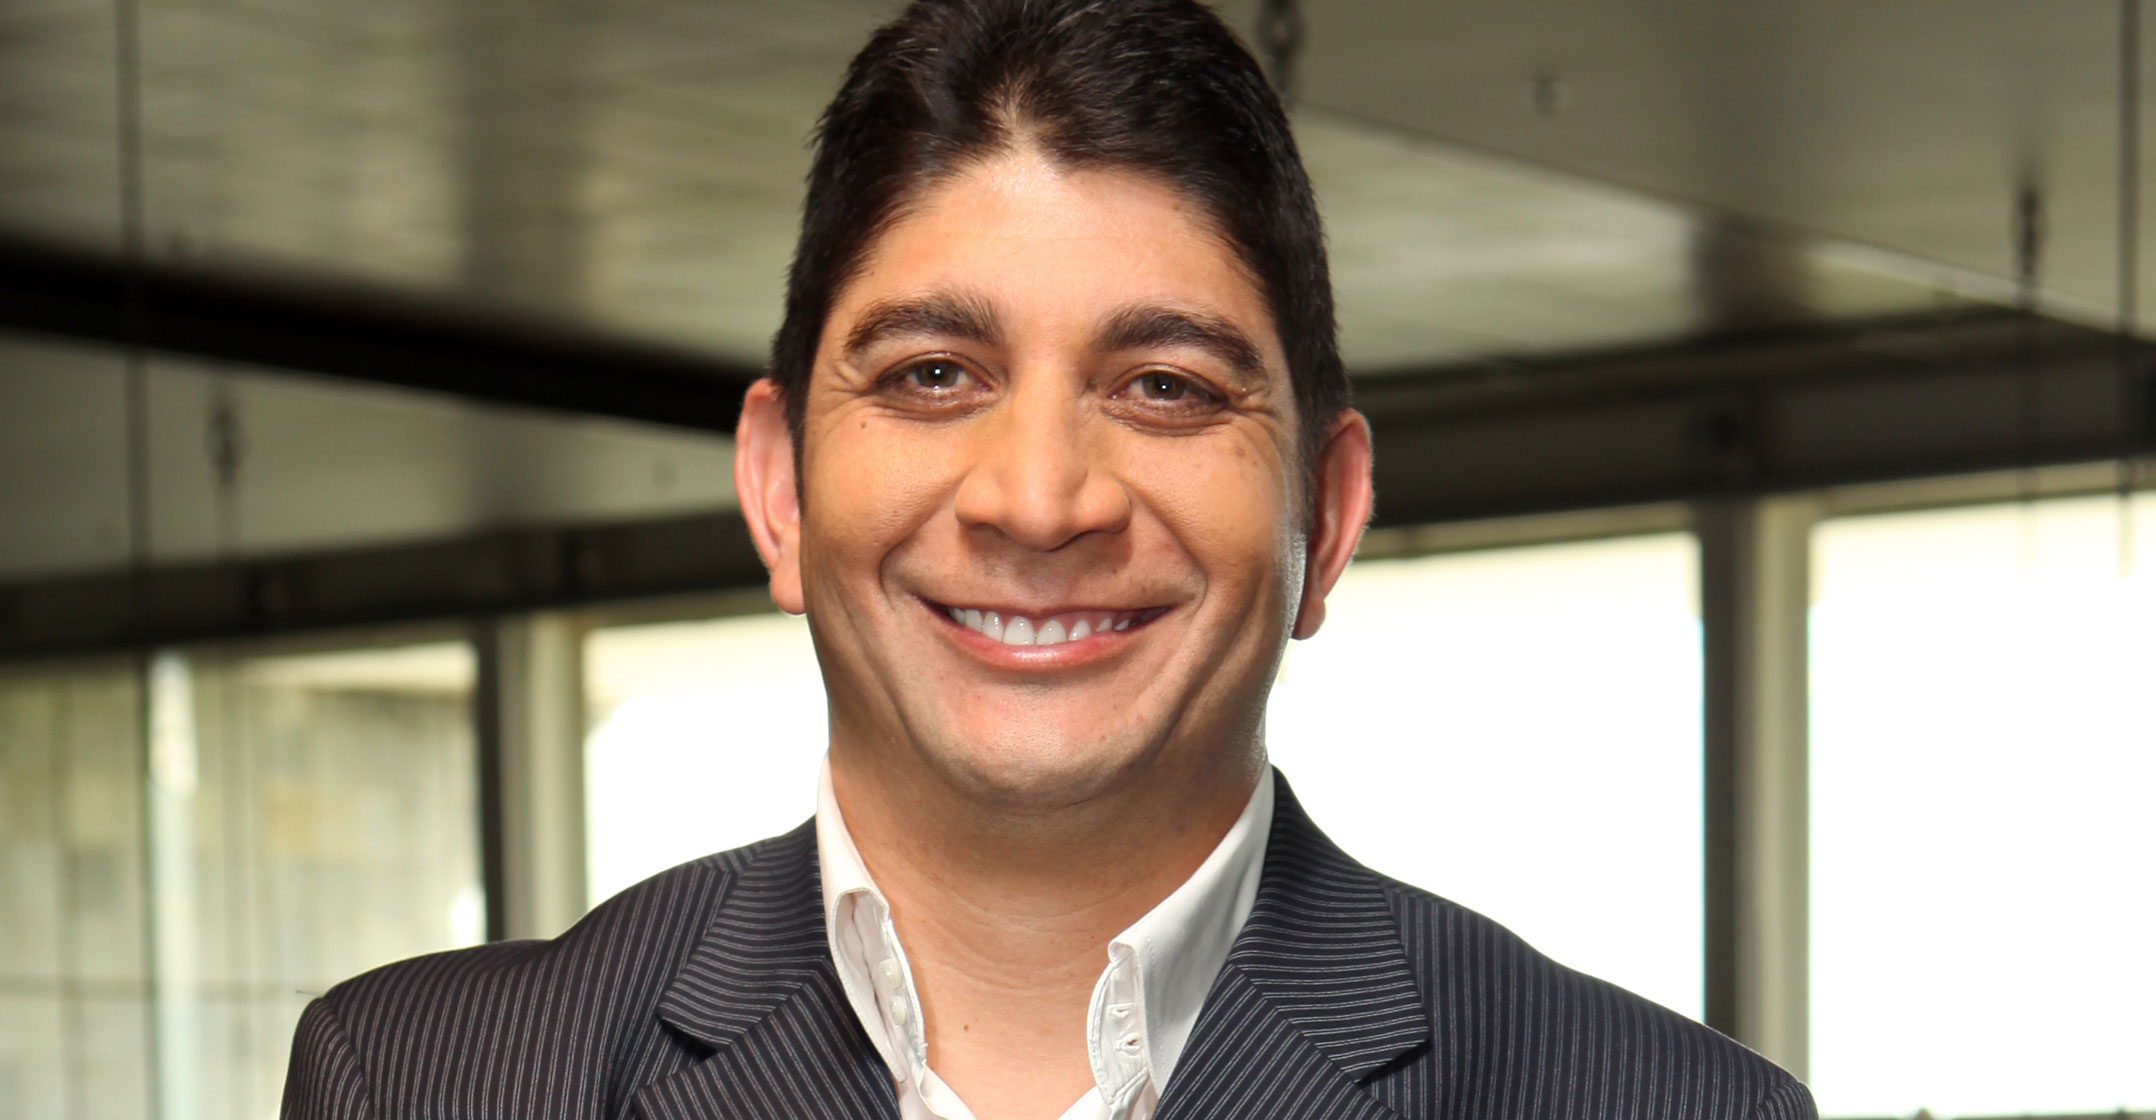 Vodacom Q1 revenue rises on South African operation's strong performance